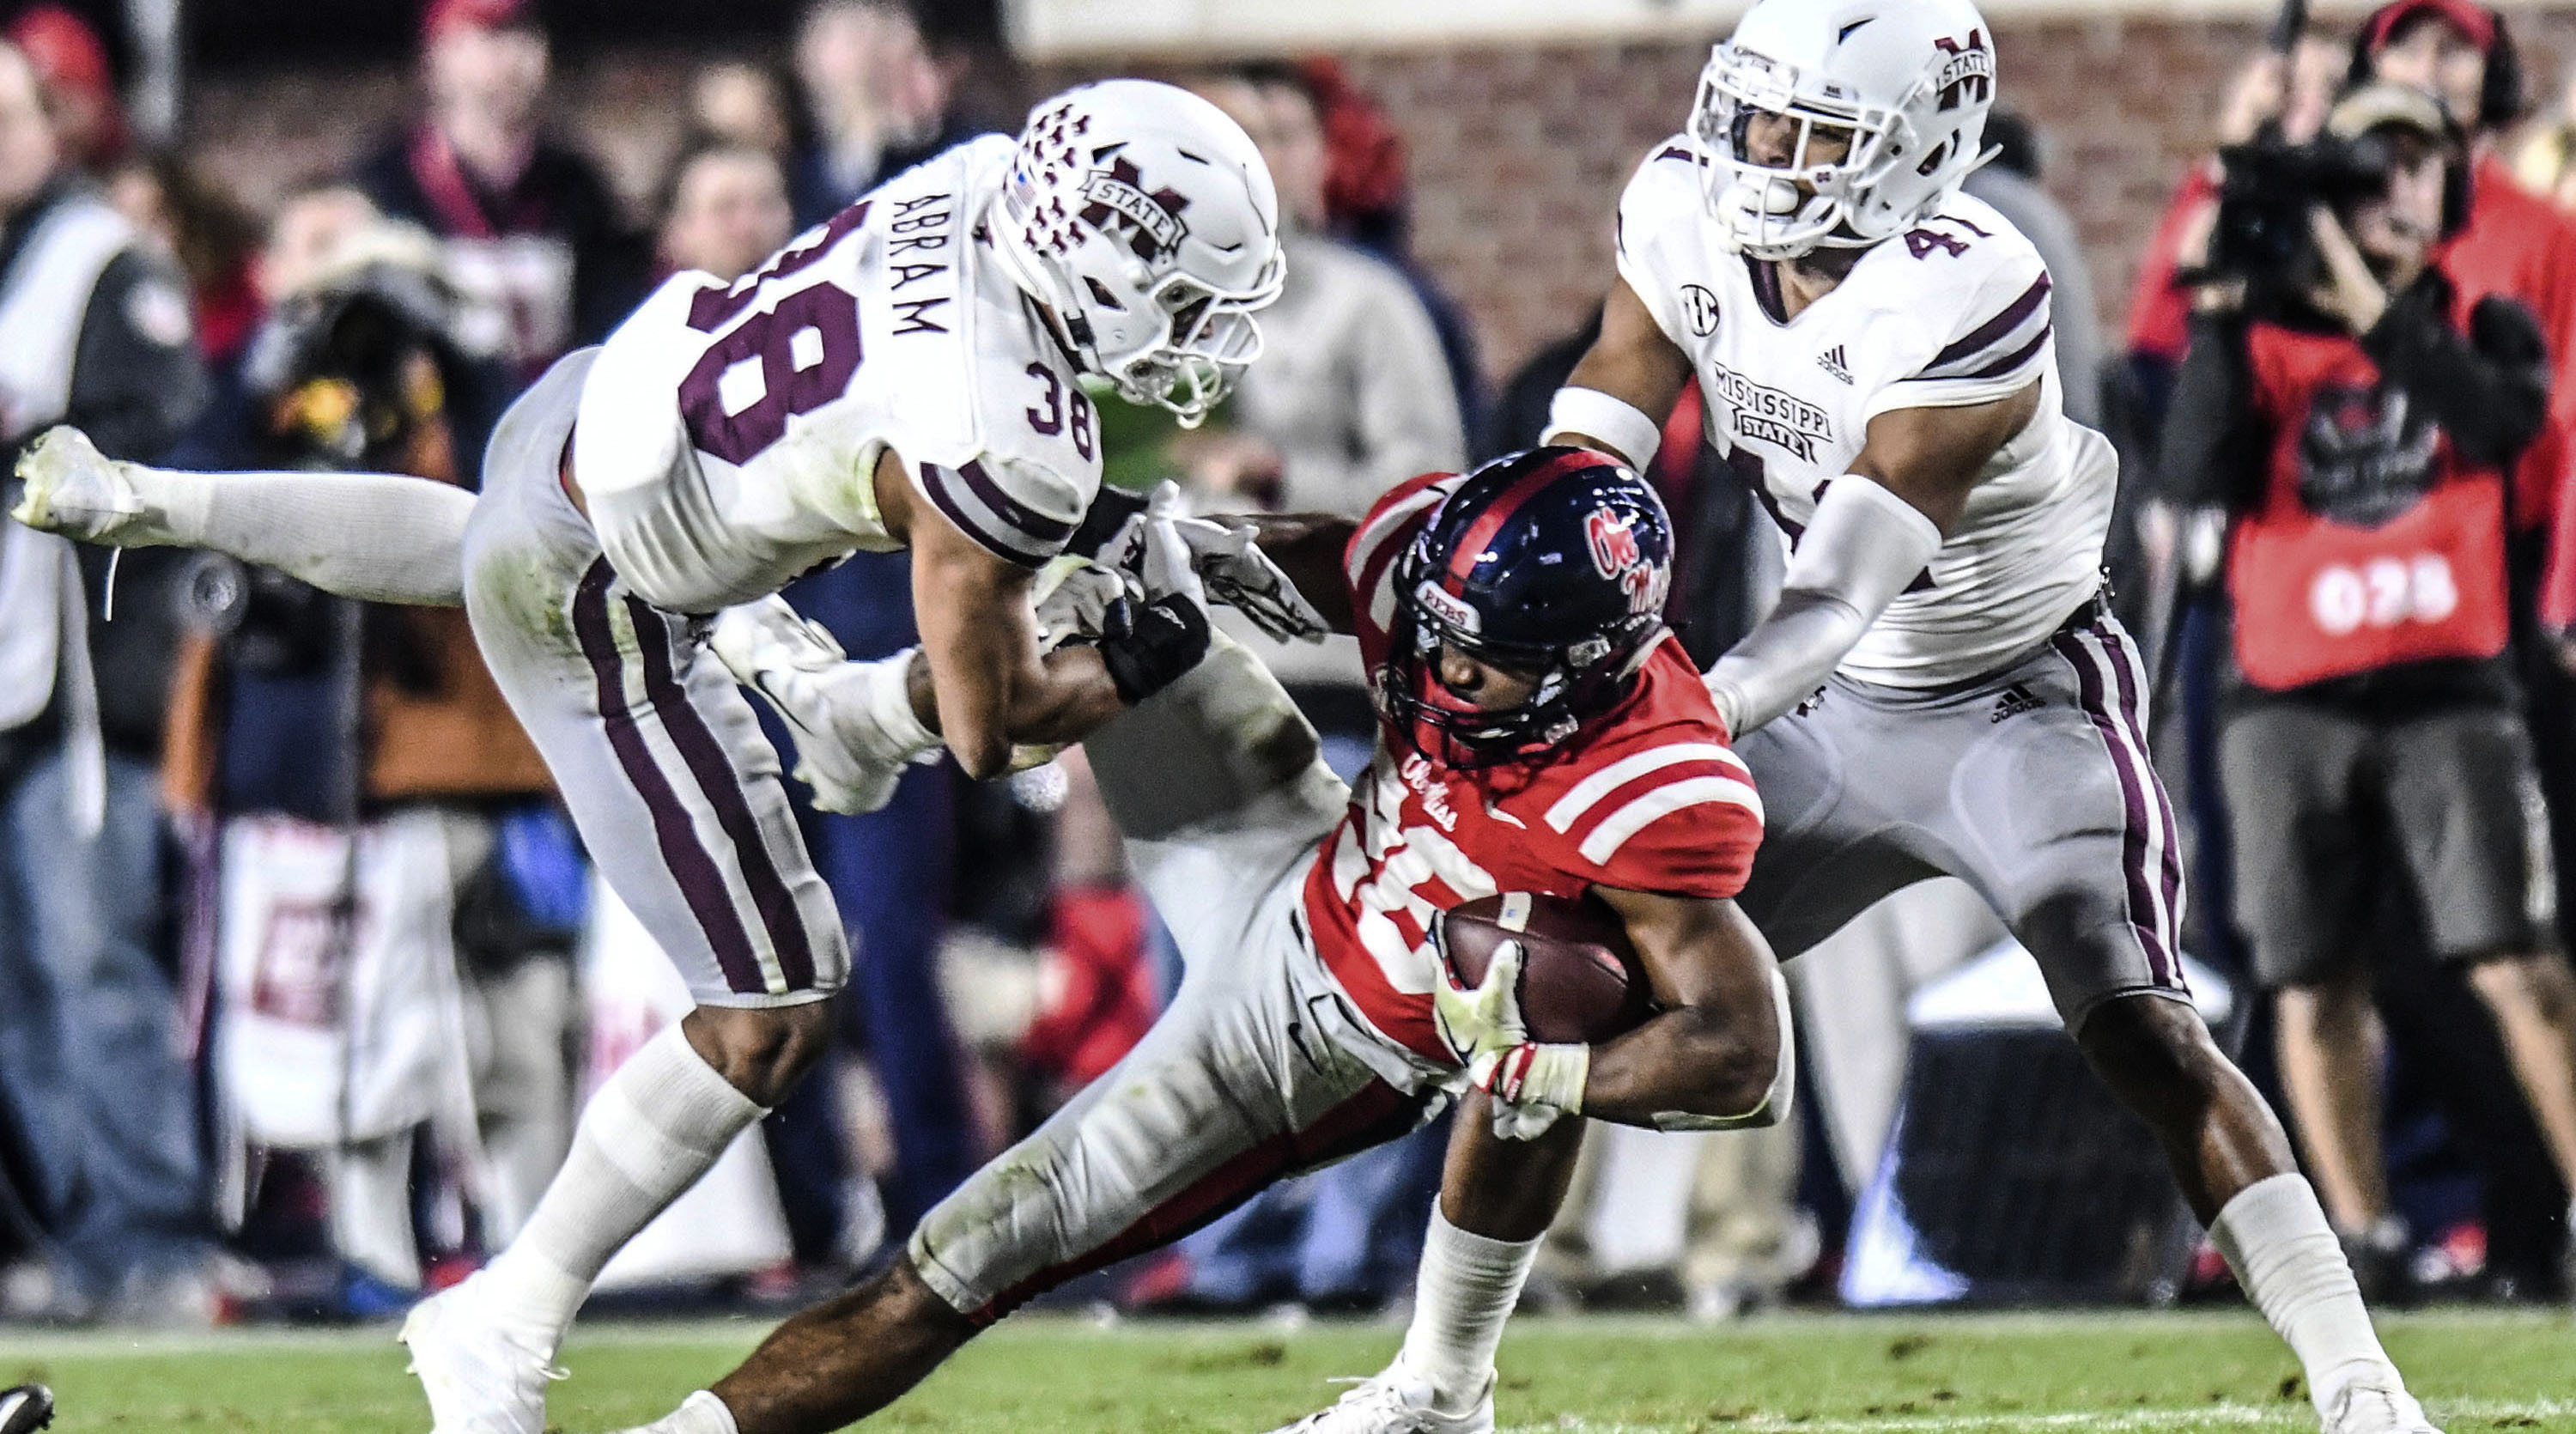 Mississippi State beats Ole Miss in Egg Bowl